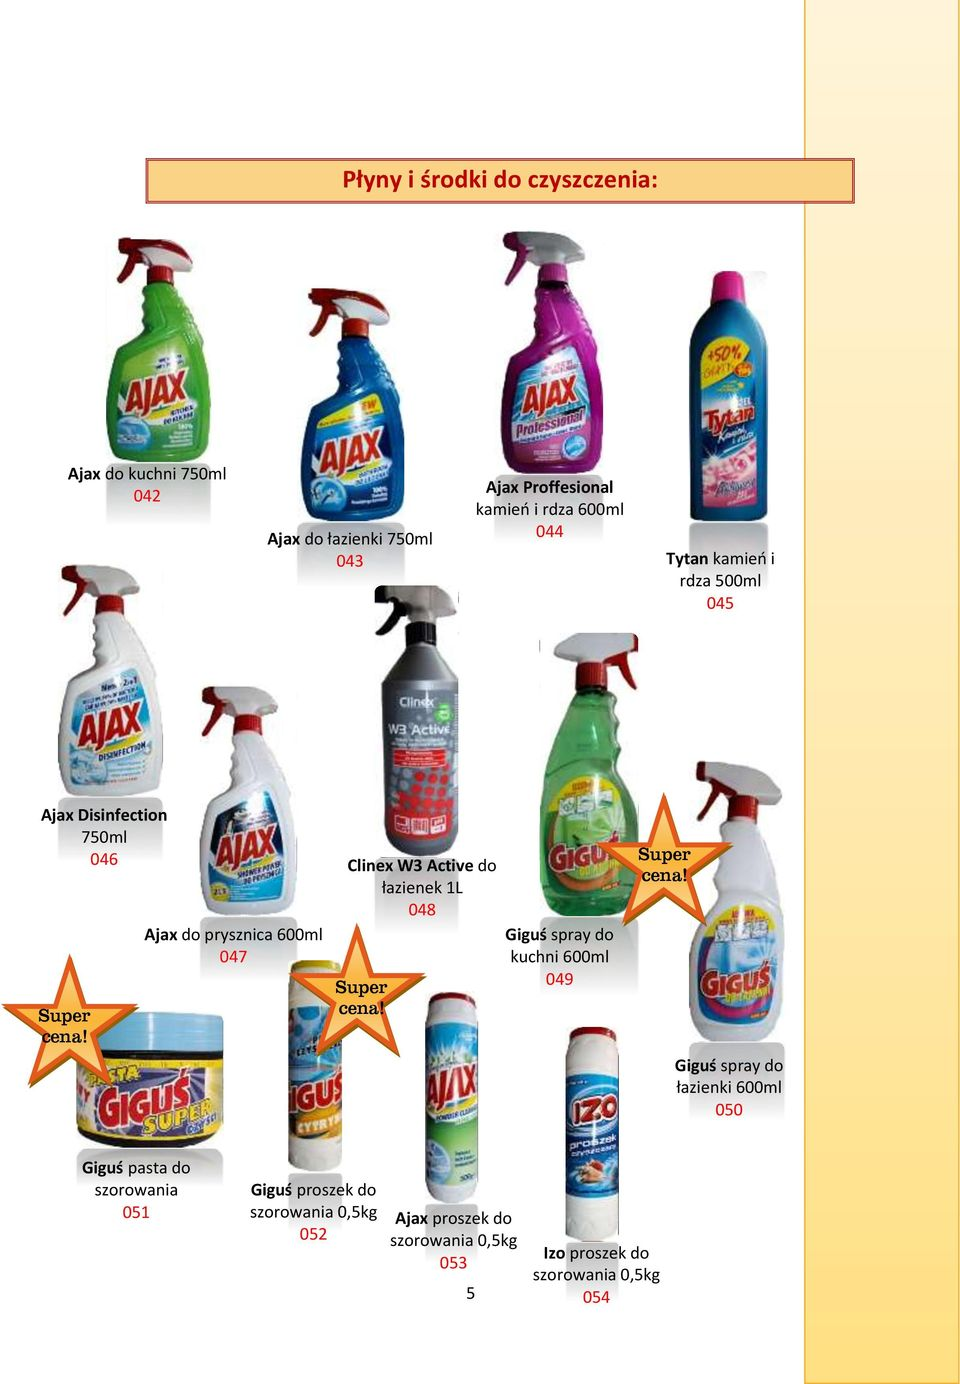 Active do łazienek 1L 048 Giguś spray do kuchni 600ml 049 Giguś spray do łazienki 600ml 050 Giguś pasta do